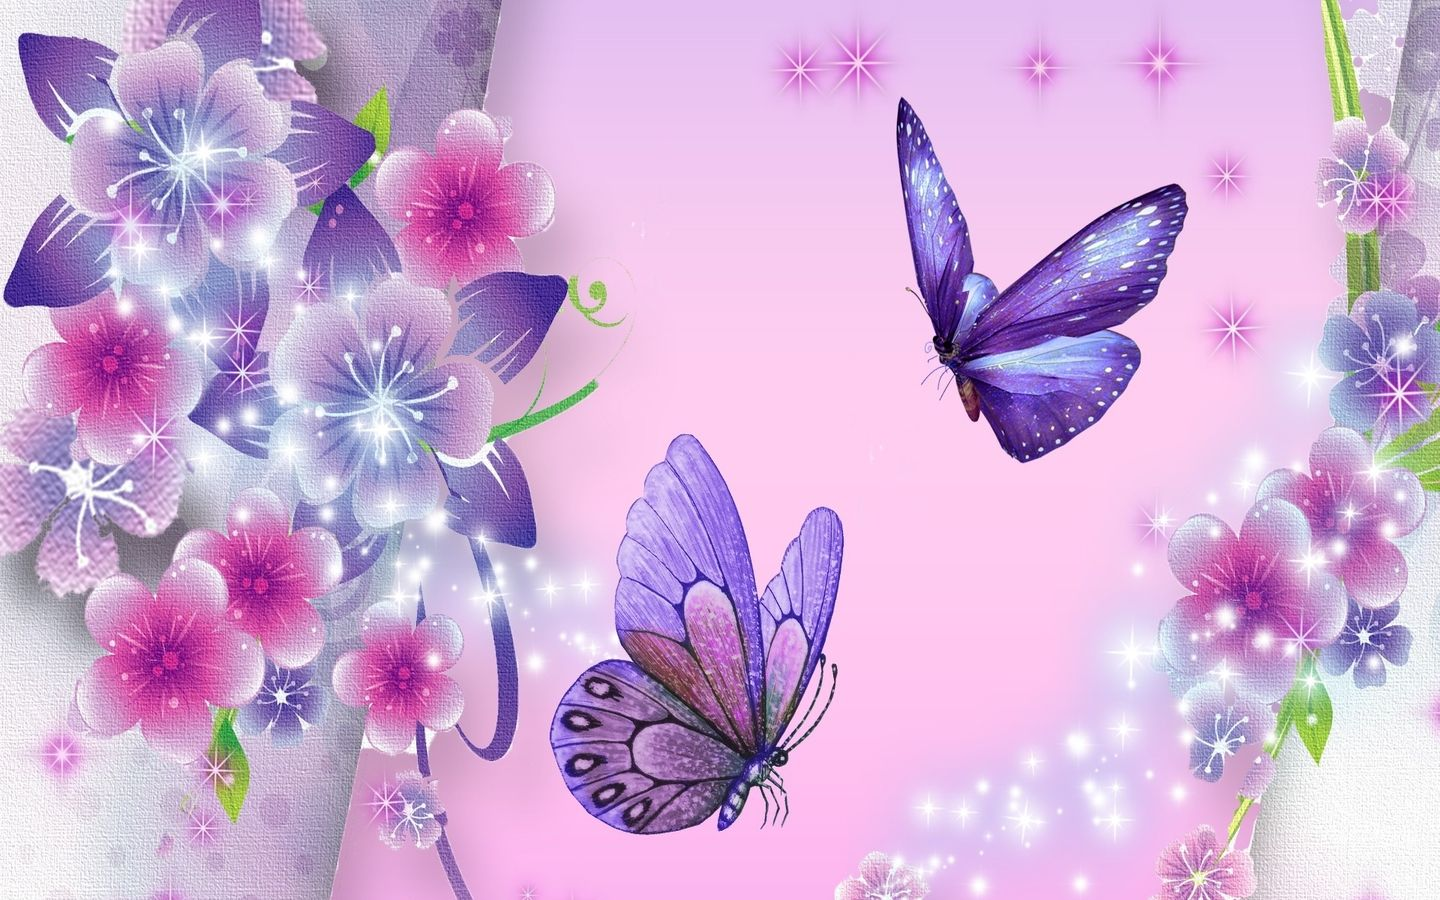 1440x900 - Pretty Butterfly Backgrounds 13